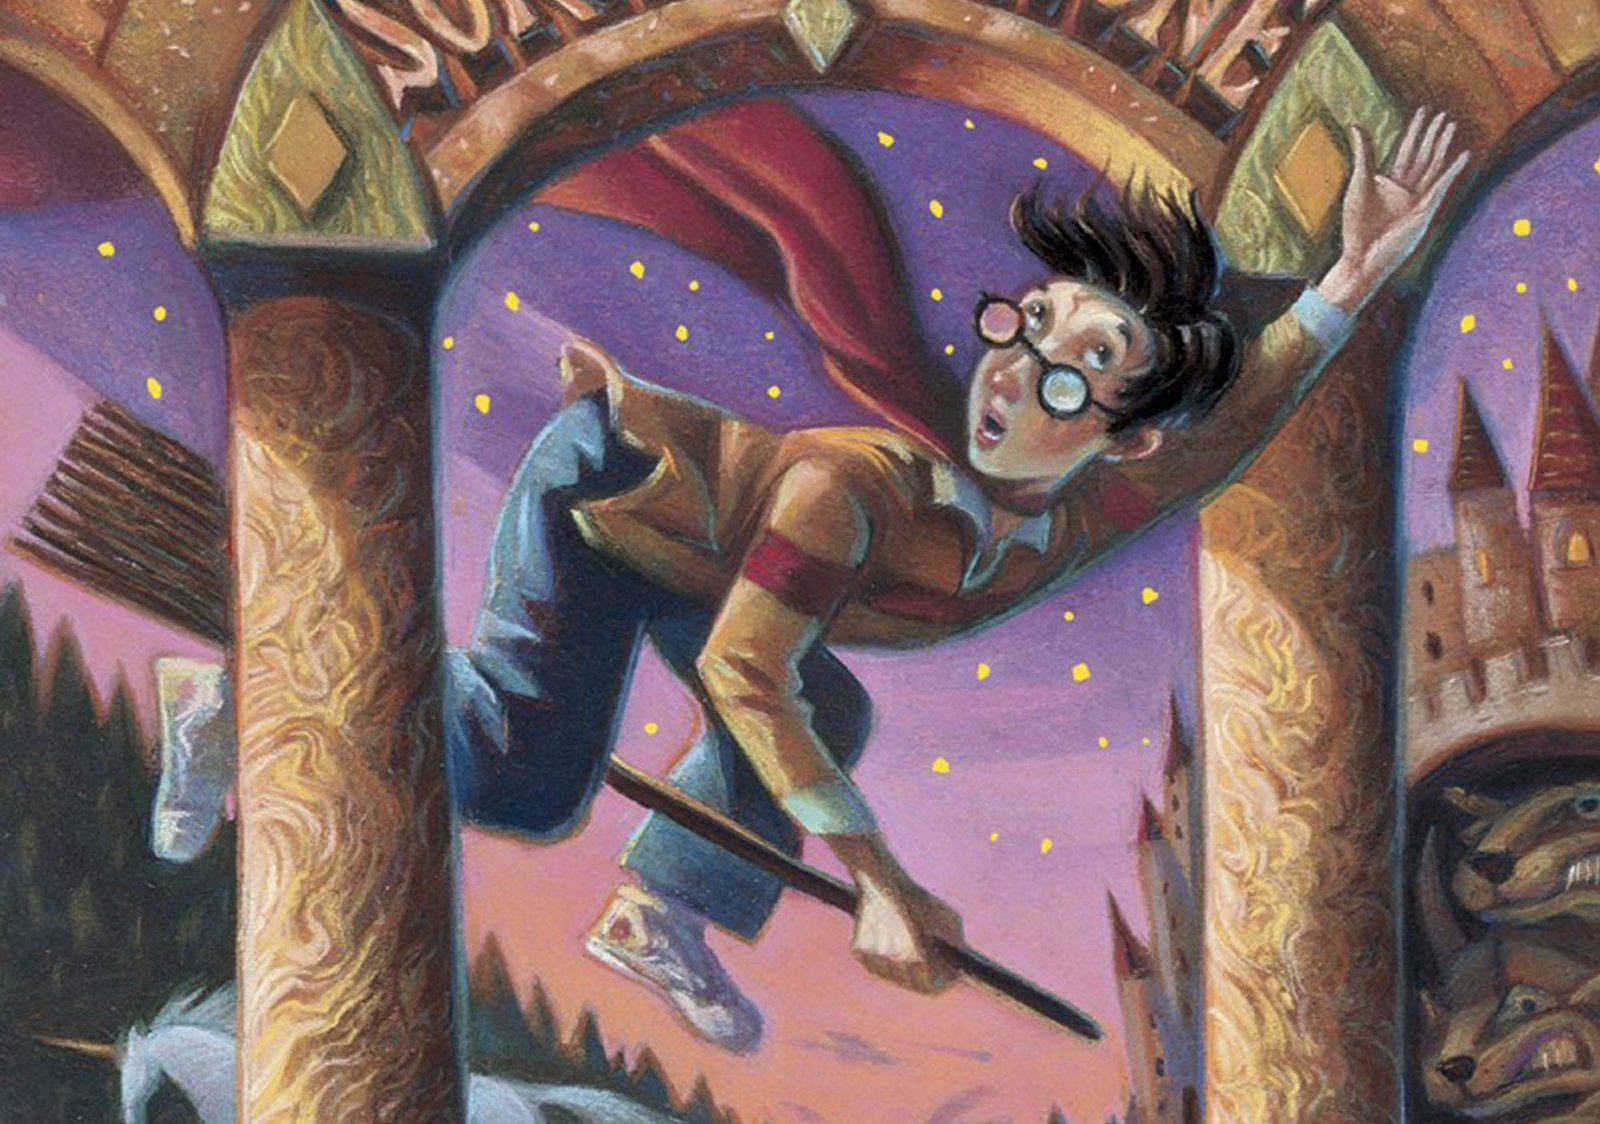 the adventures of harry potter in the harry potter series a fantasy novel by jk rowling Harry potter tour of the uk novel adventures plans a seven jk rowling's harry potter books harry potter gifts harry potter books fantasy books.